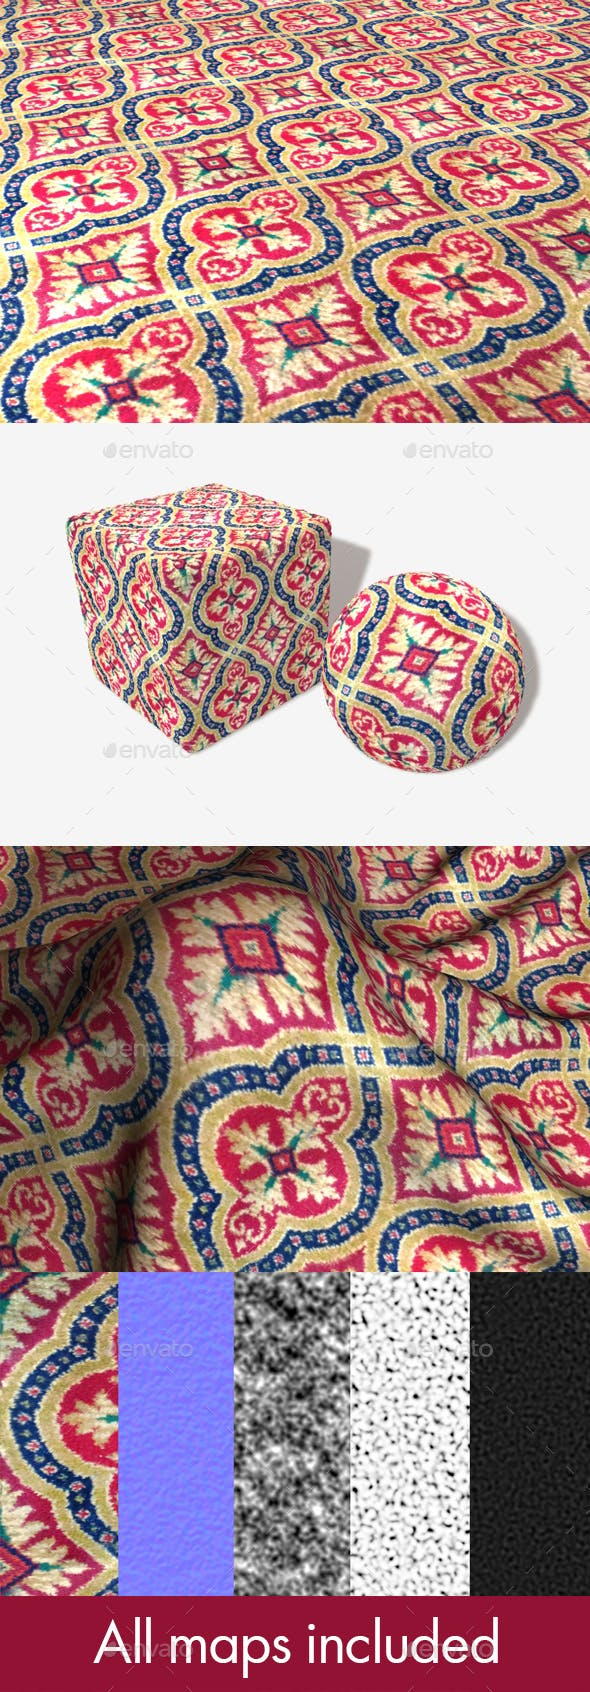 Old Style Carpet Seamless Texture - 3DOcean Item for Sale